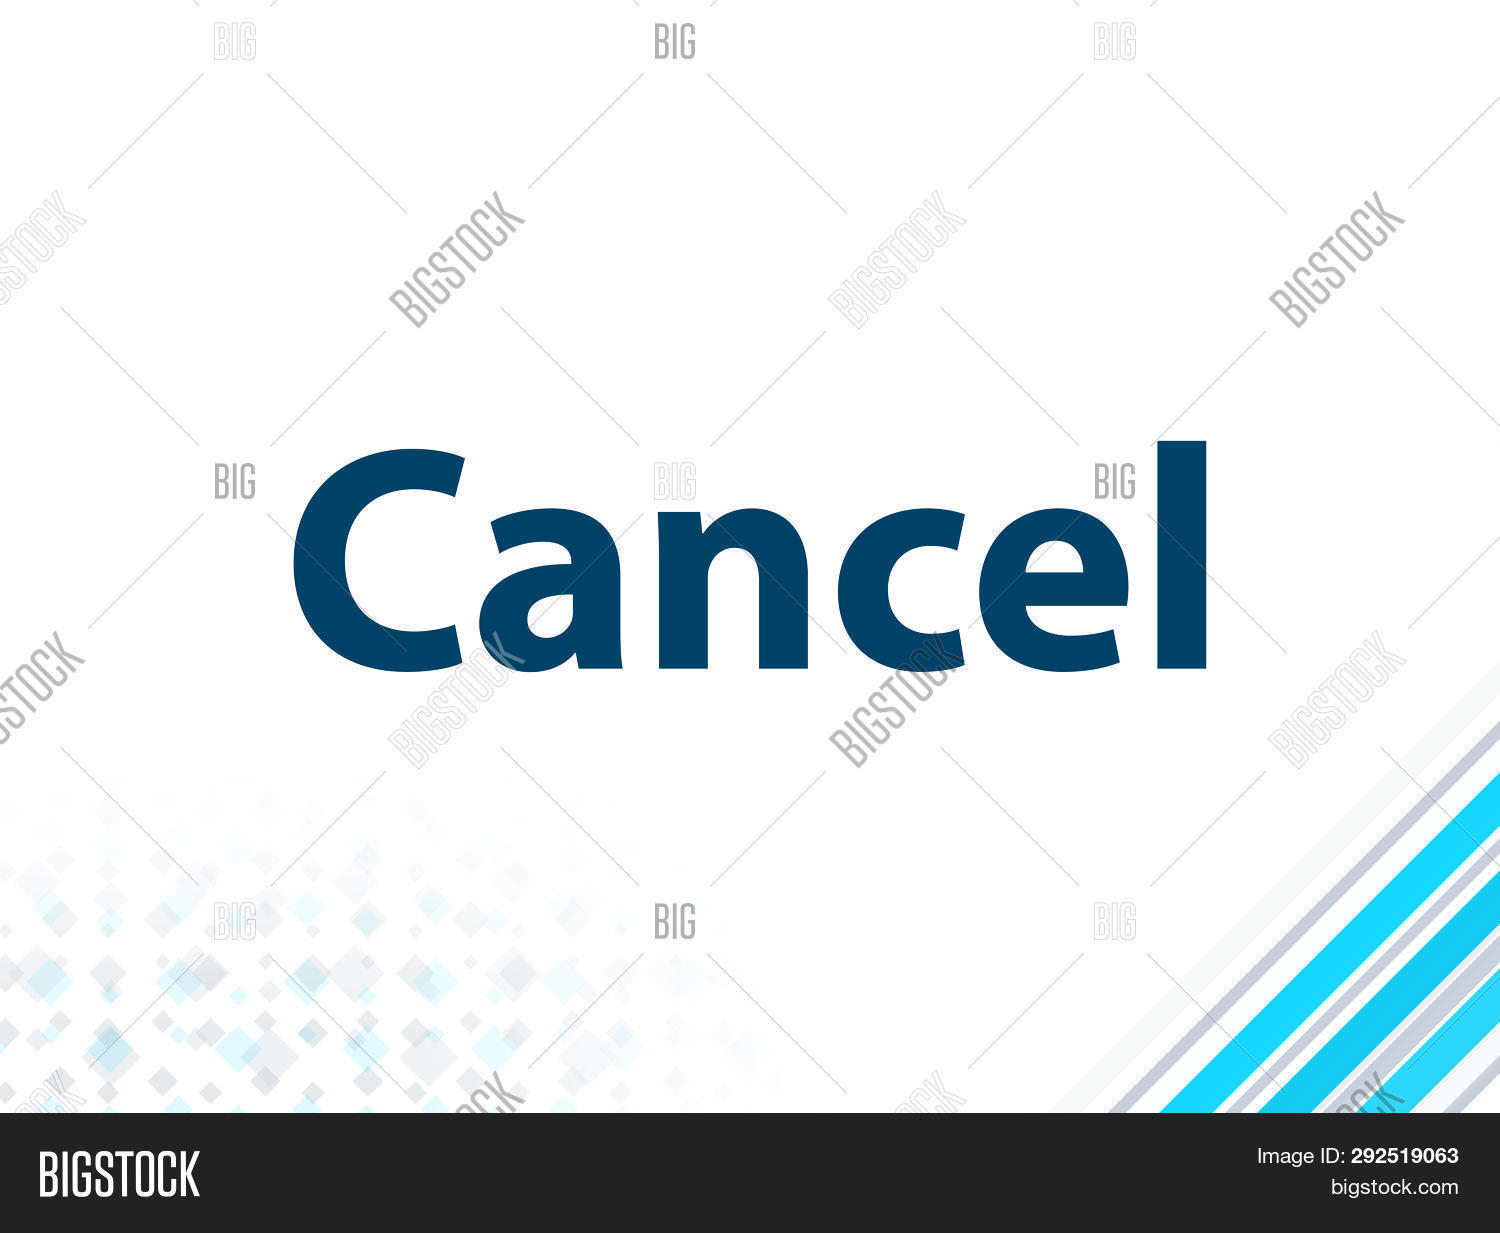 abandon,abstract,annul,background,blue,call,cancel,cut,delete,design,eliminate,erase,flat,illustration,invalidate,modern,nullify,off,omit,postpone,remove,repeal,rescind,reverse,revoke,terminate,text,void,withdraw,word